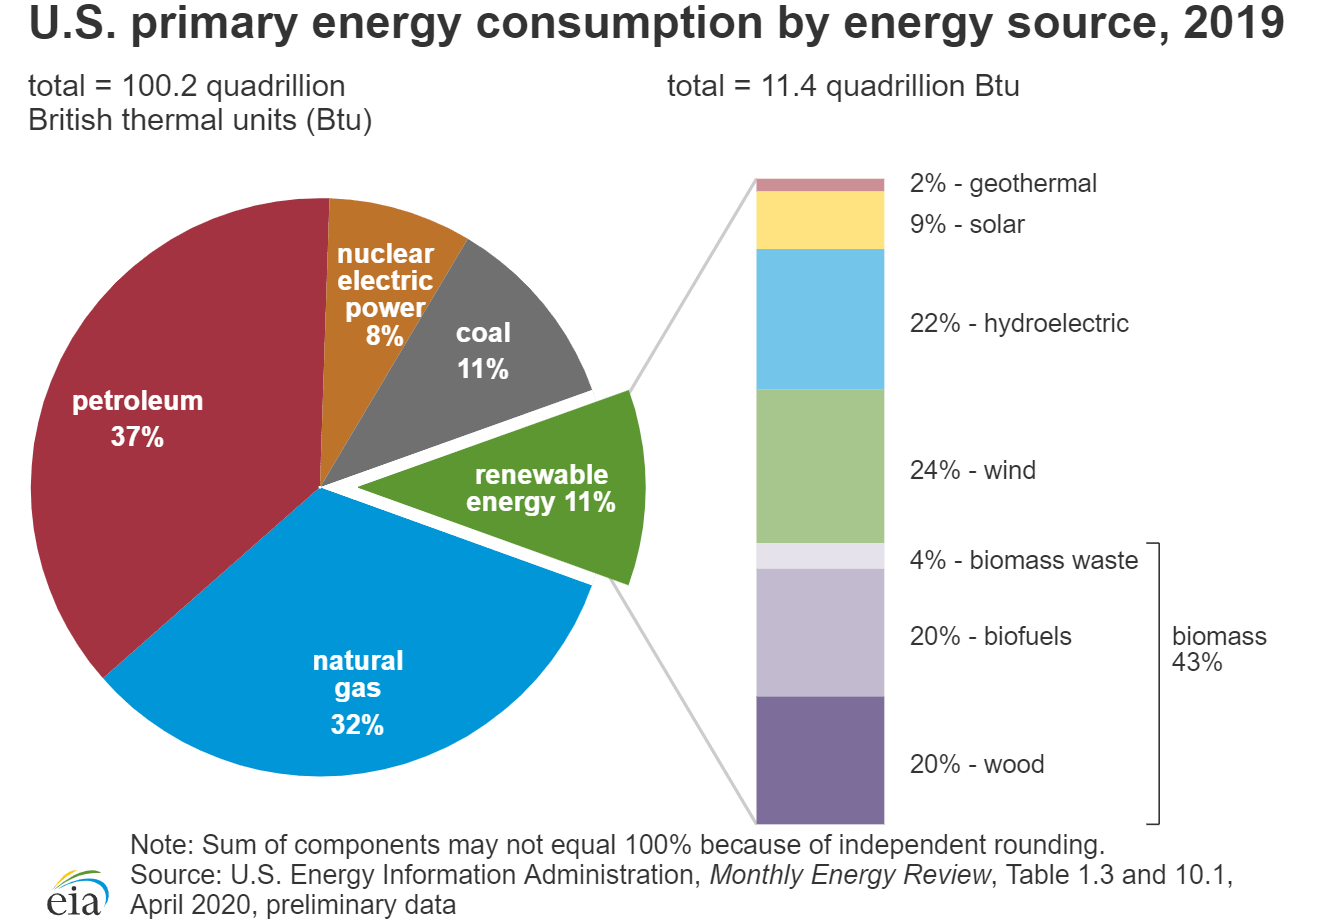 U.S. primary energy consumption by energy source, 2019 image from the U.S. Energy Information Administration.